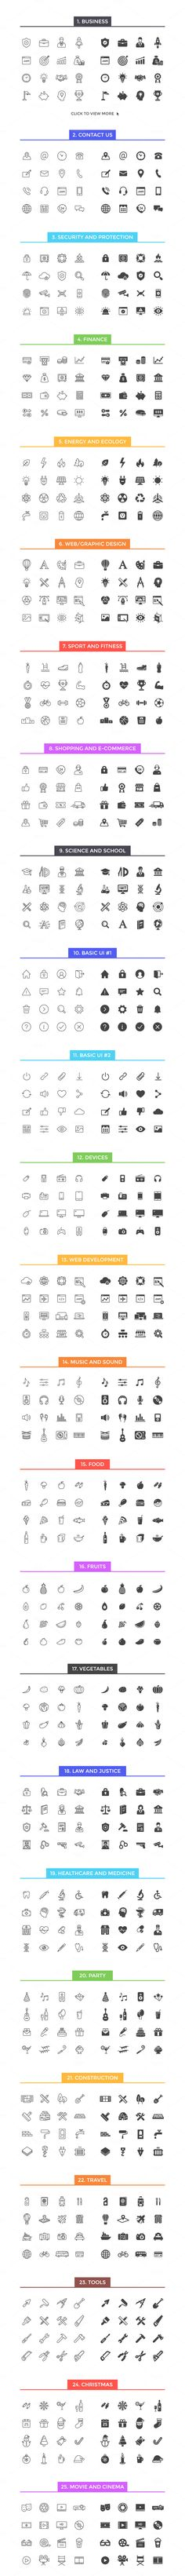 800 Line & Solid Icons by filborg on @creativemarket